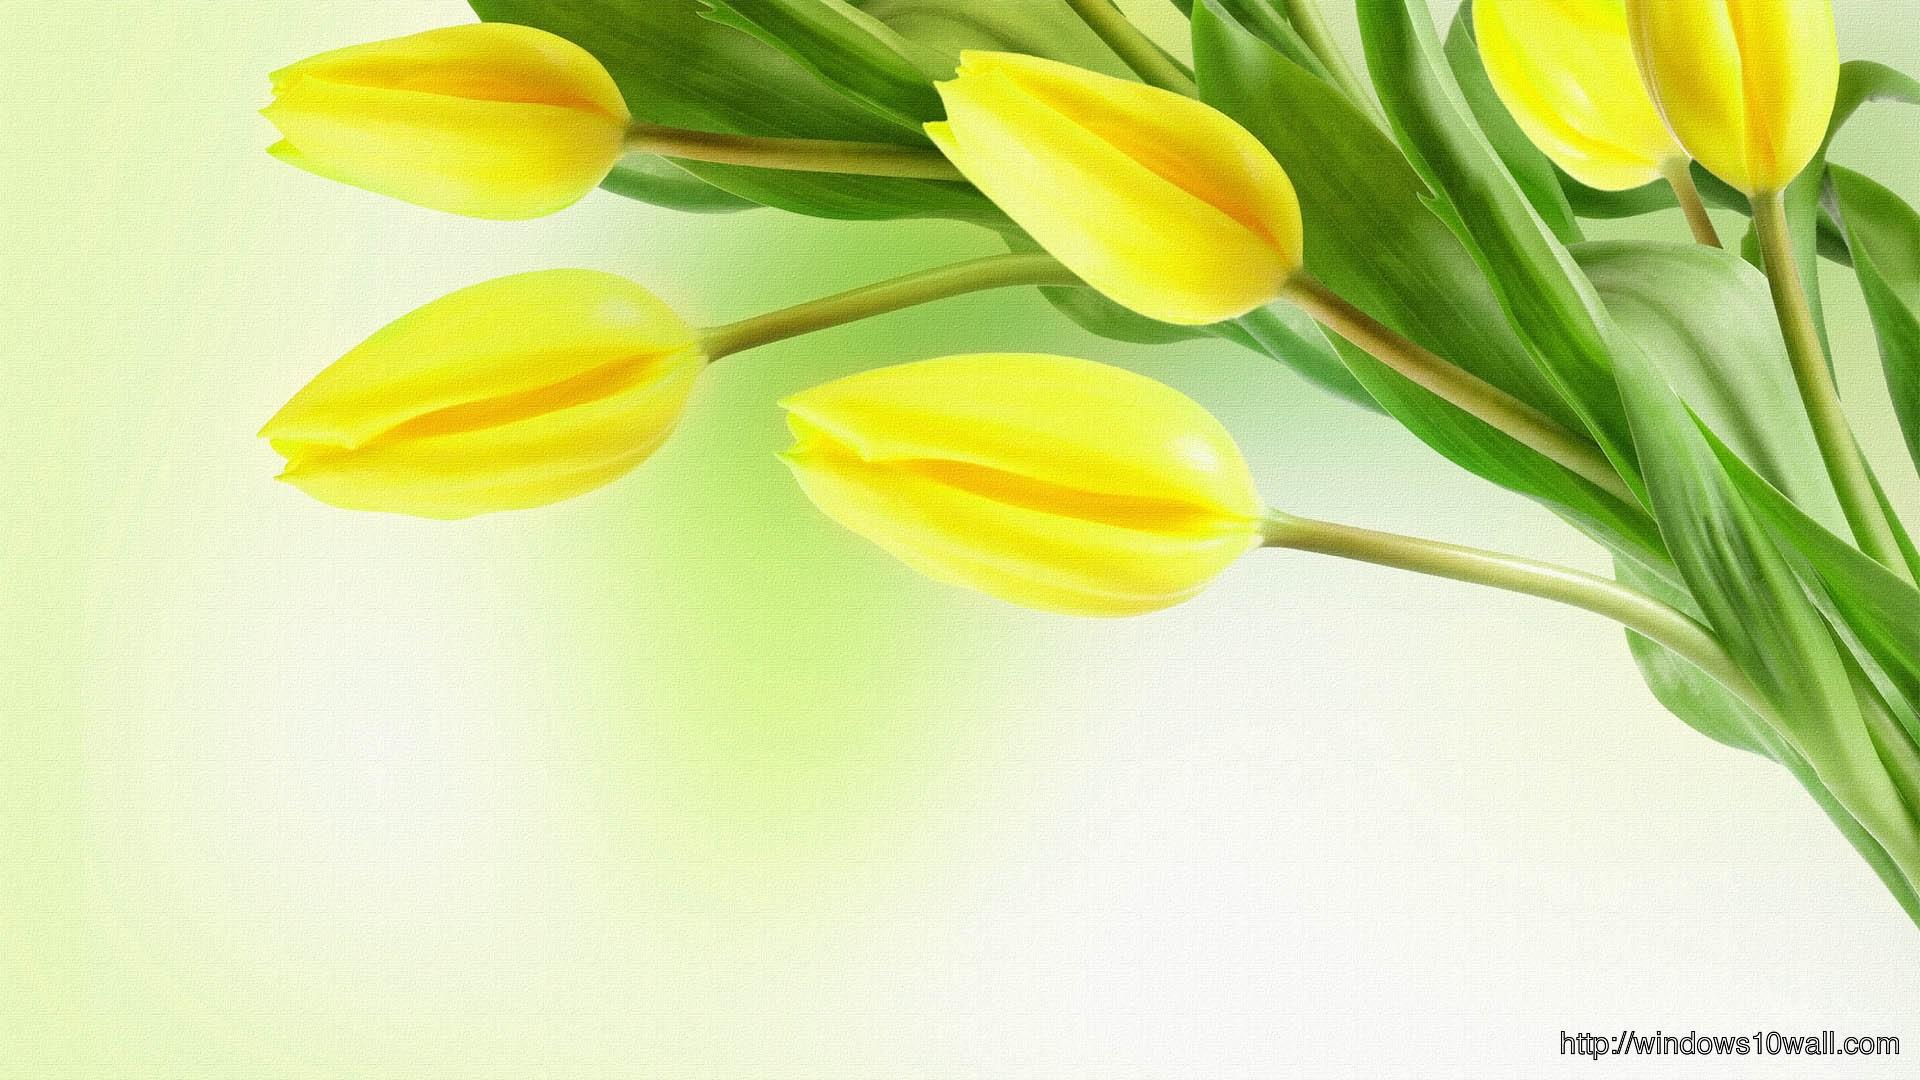 Springs Yellow Tulips Hd Wallpaper Windows 10 Wallpapers